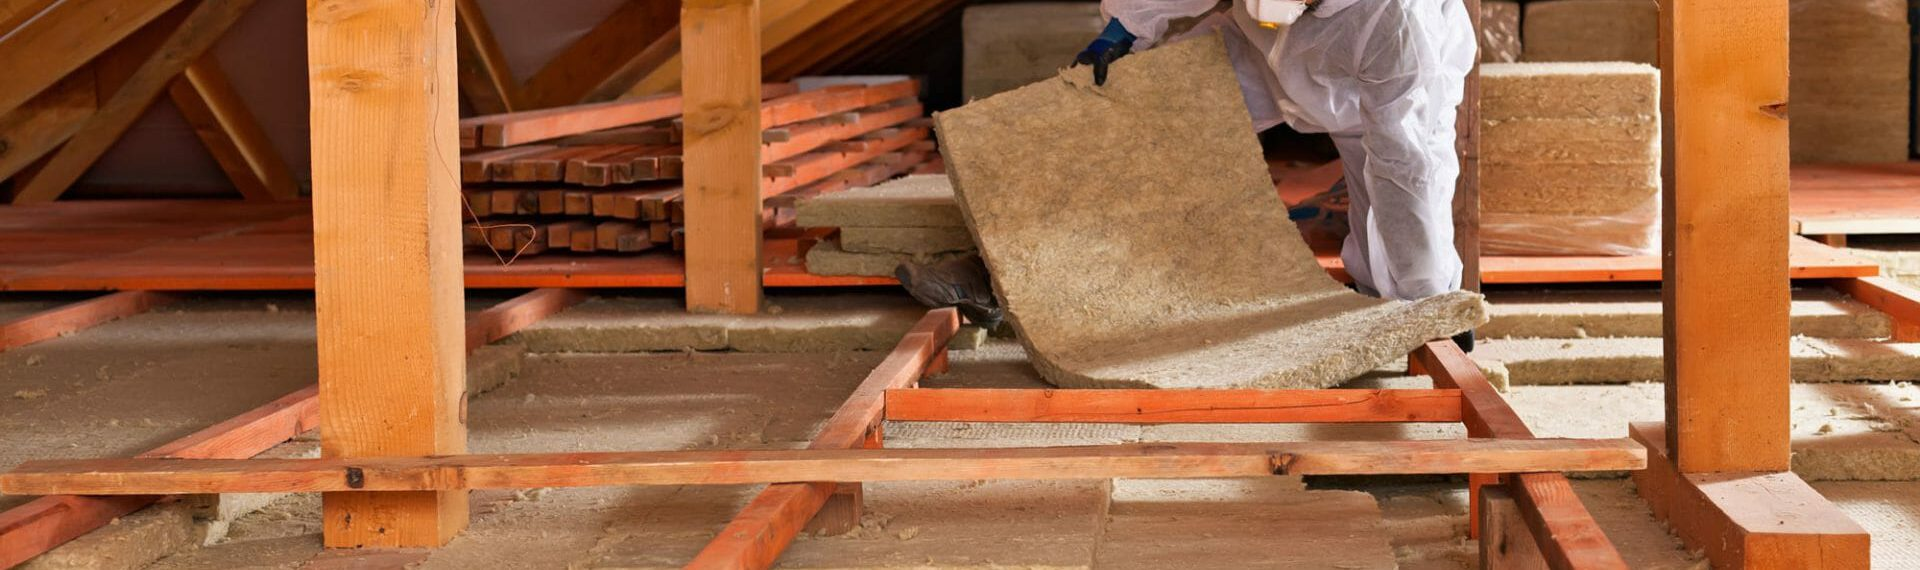 roofer installing insulation in a loft space